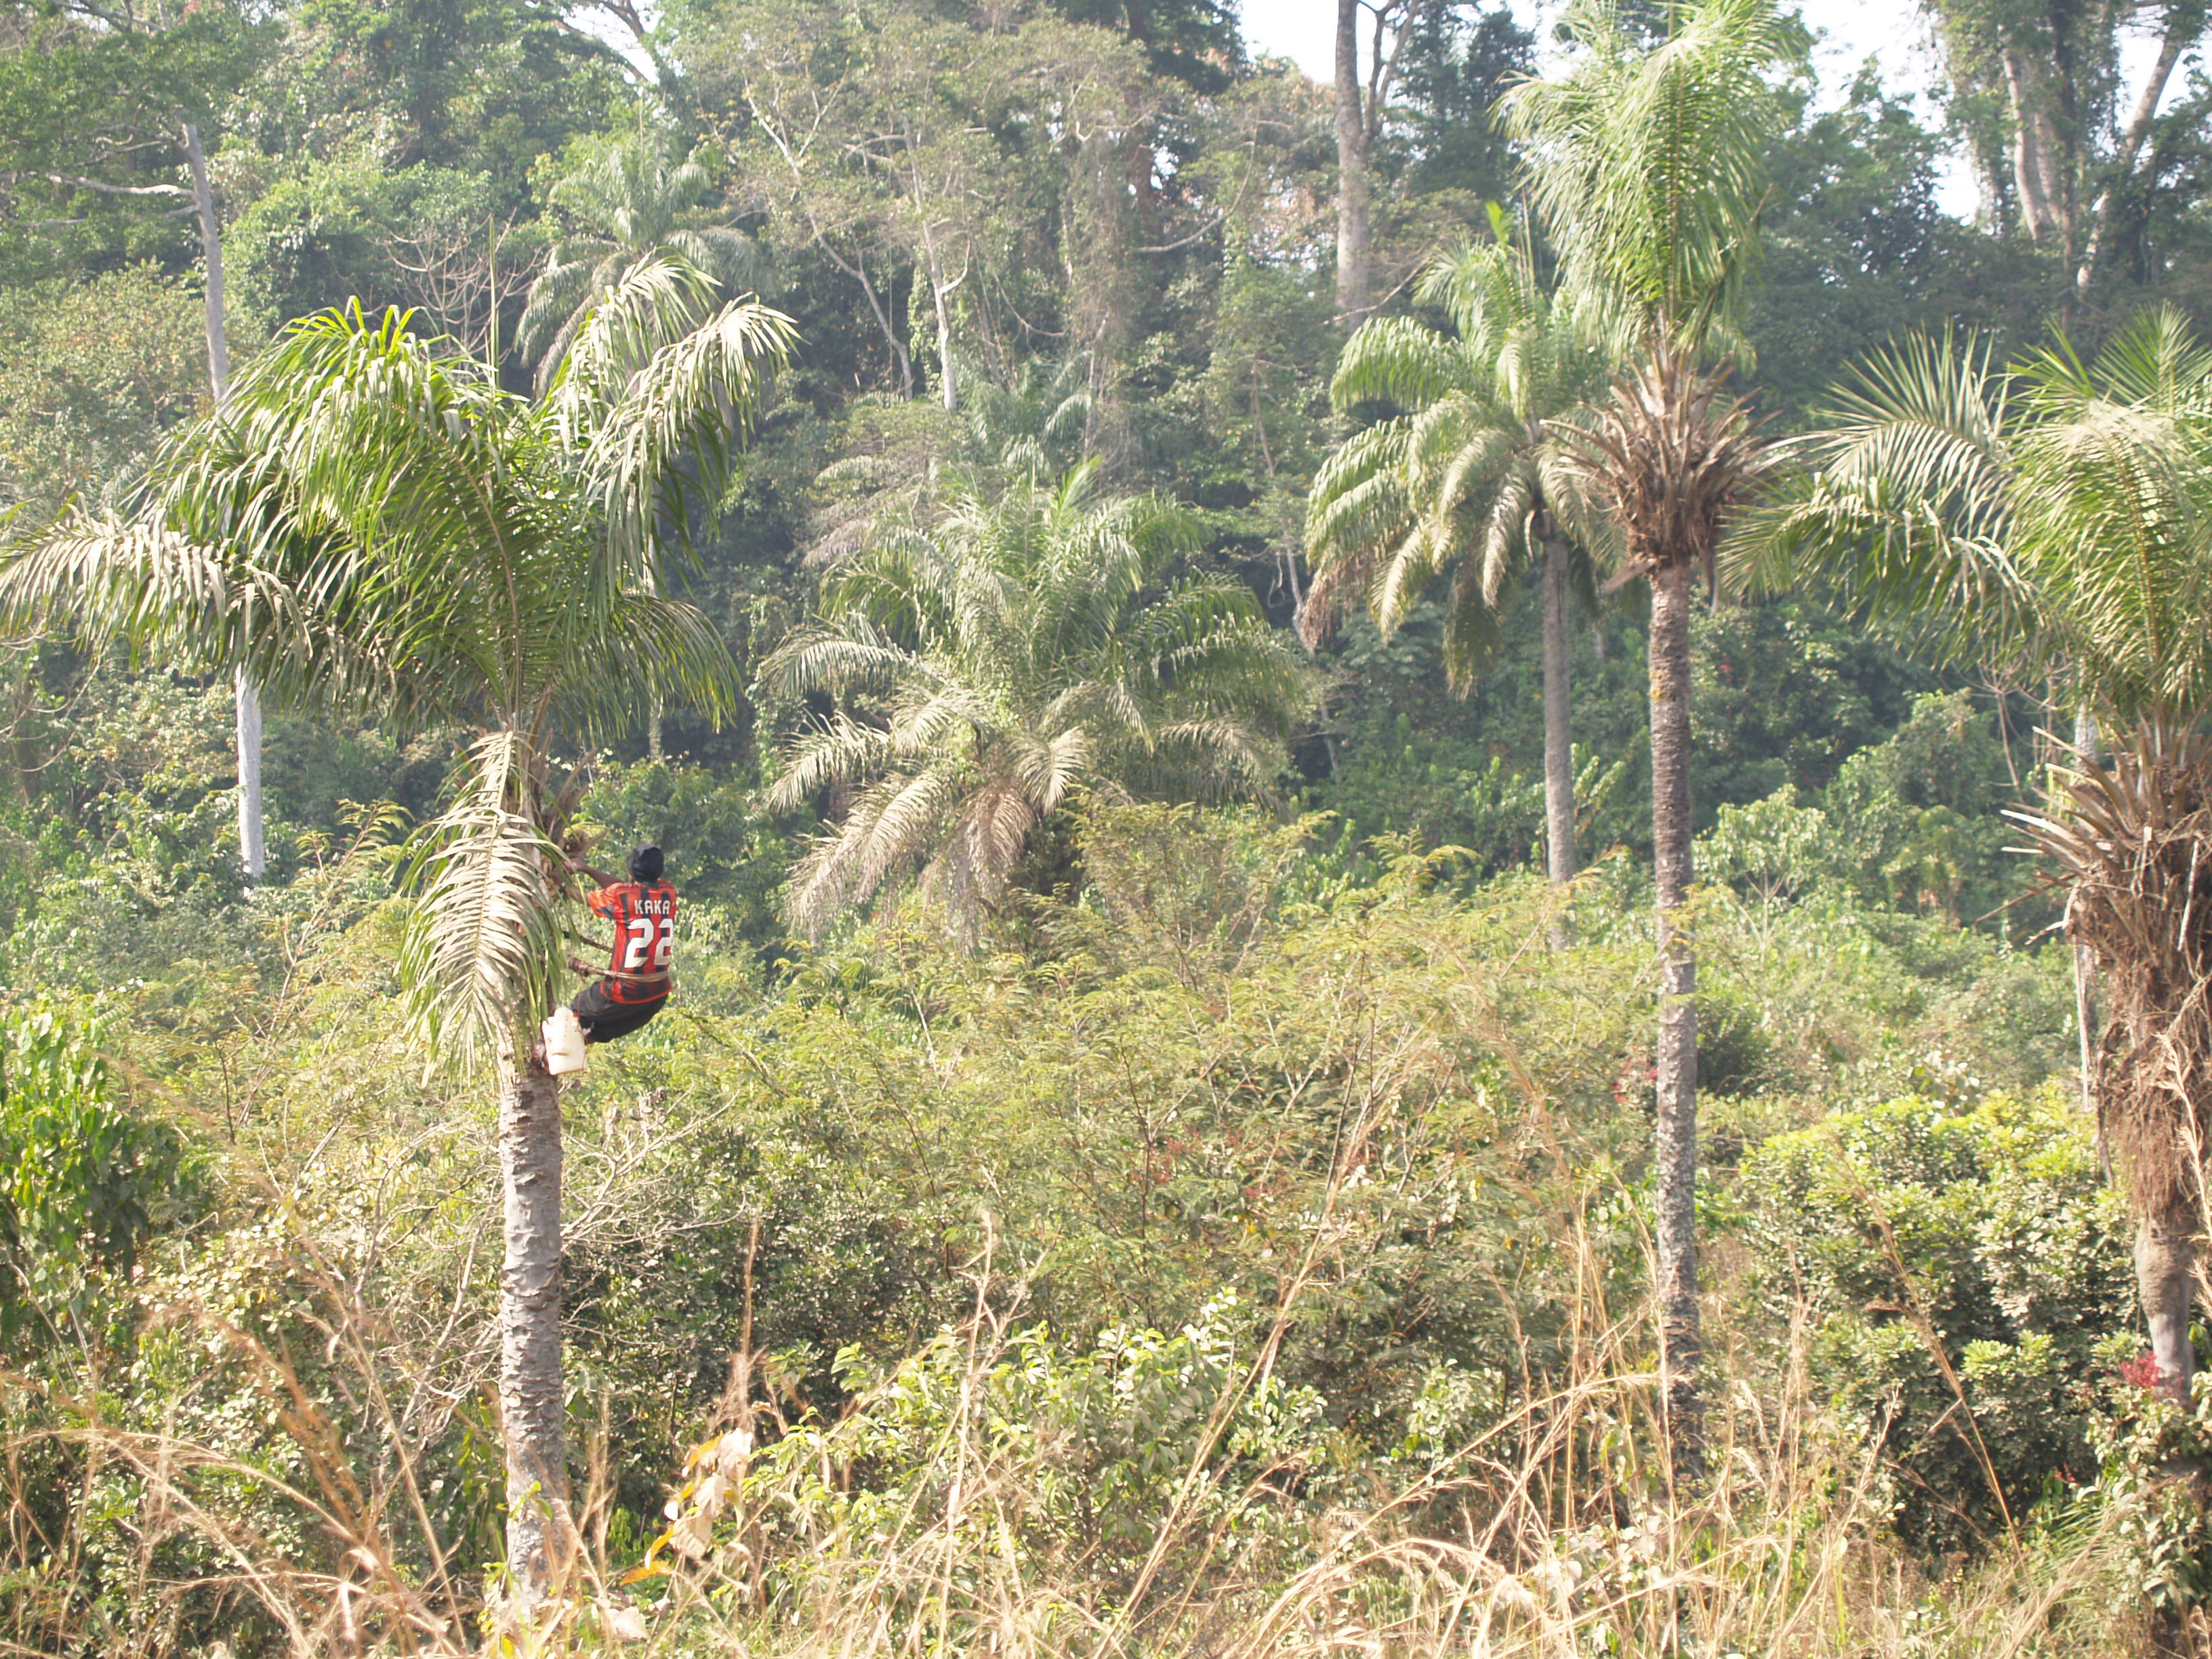 Palm wine or 'poyo' in Sierra Leone is harvested from the African oil palm (Elaeis guineense).